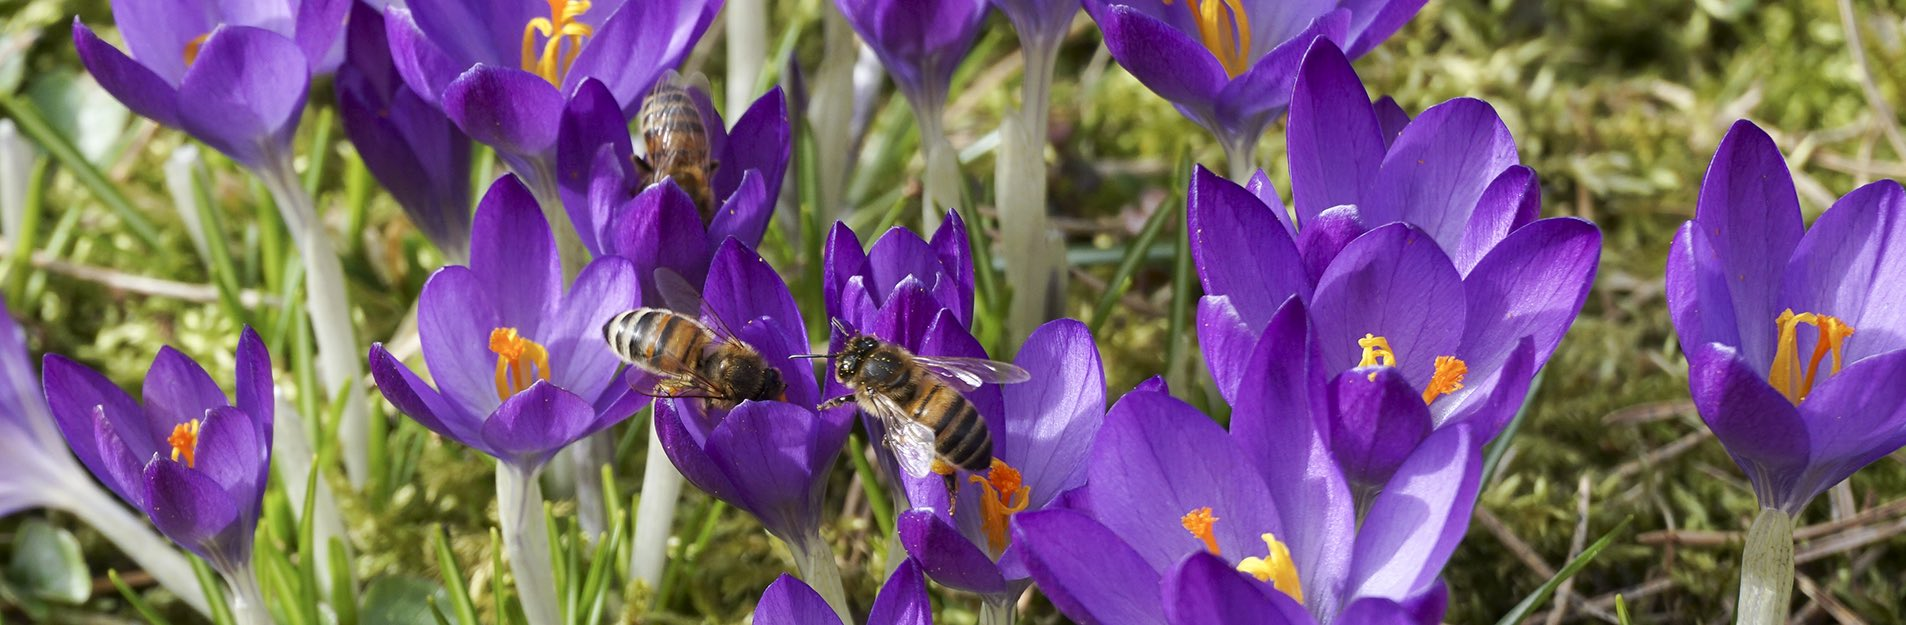 The first bees in spring